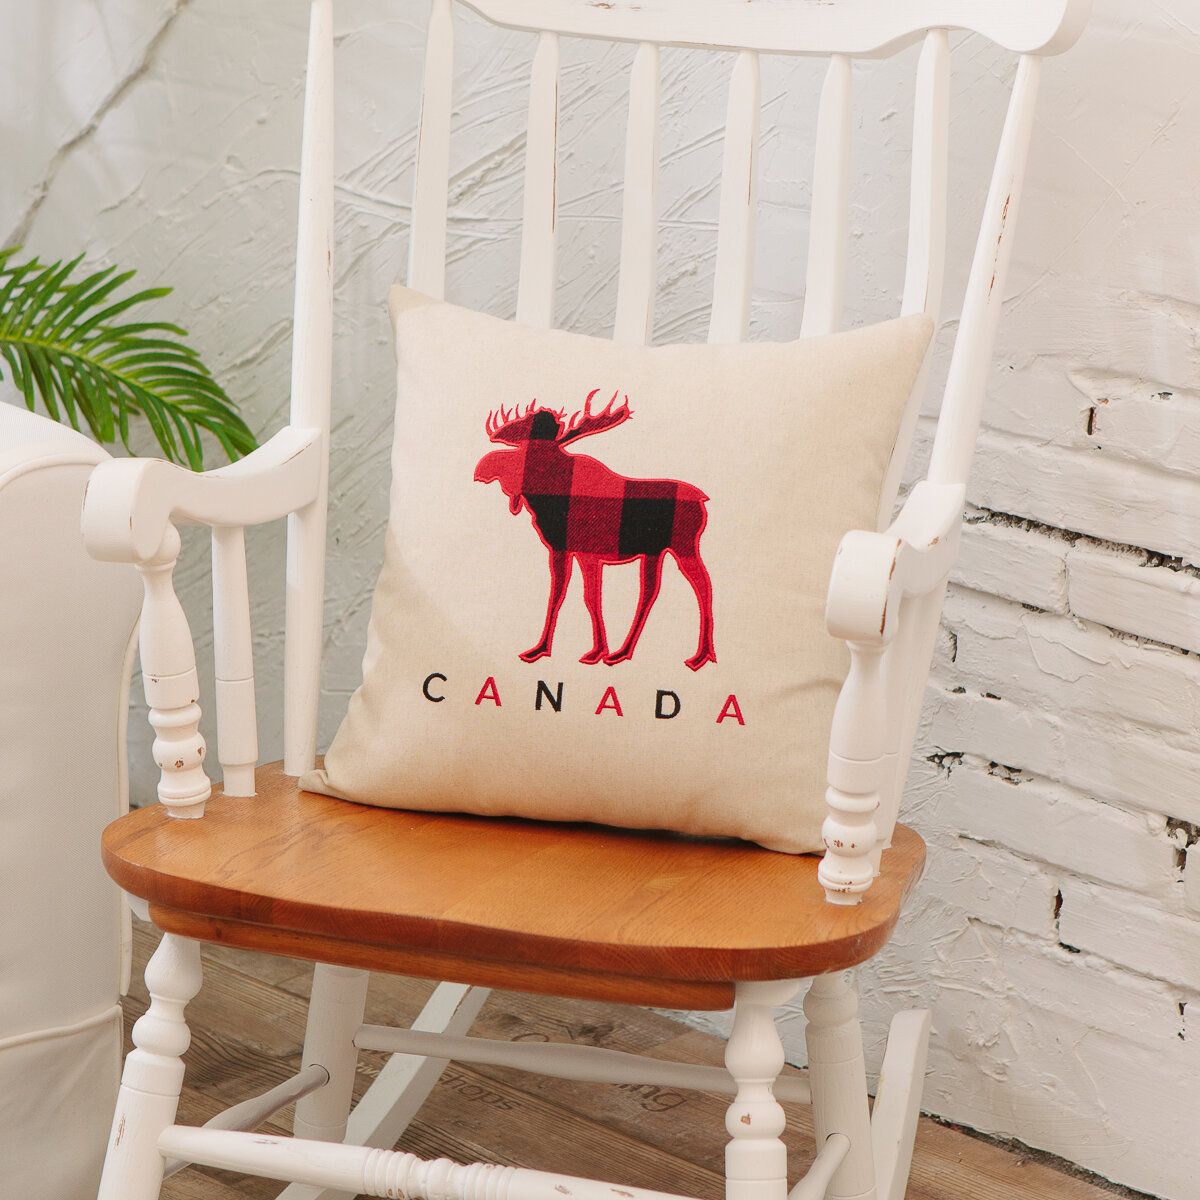 Millwood Pines Theberge Canada Plaid Moose Throw Pillow Wayfair